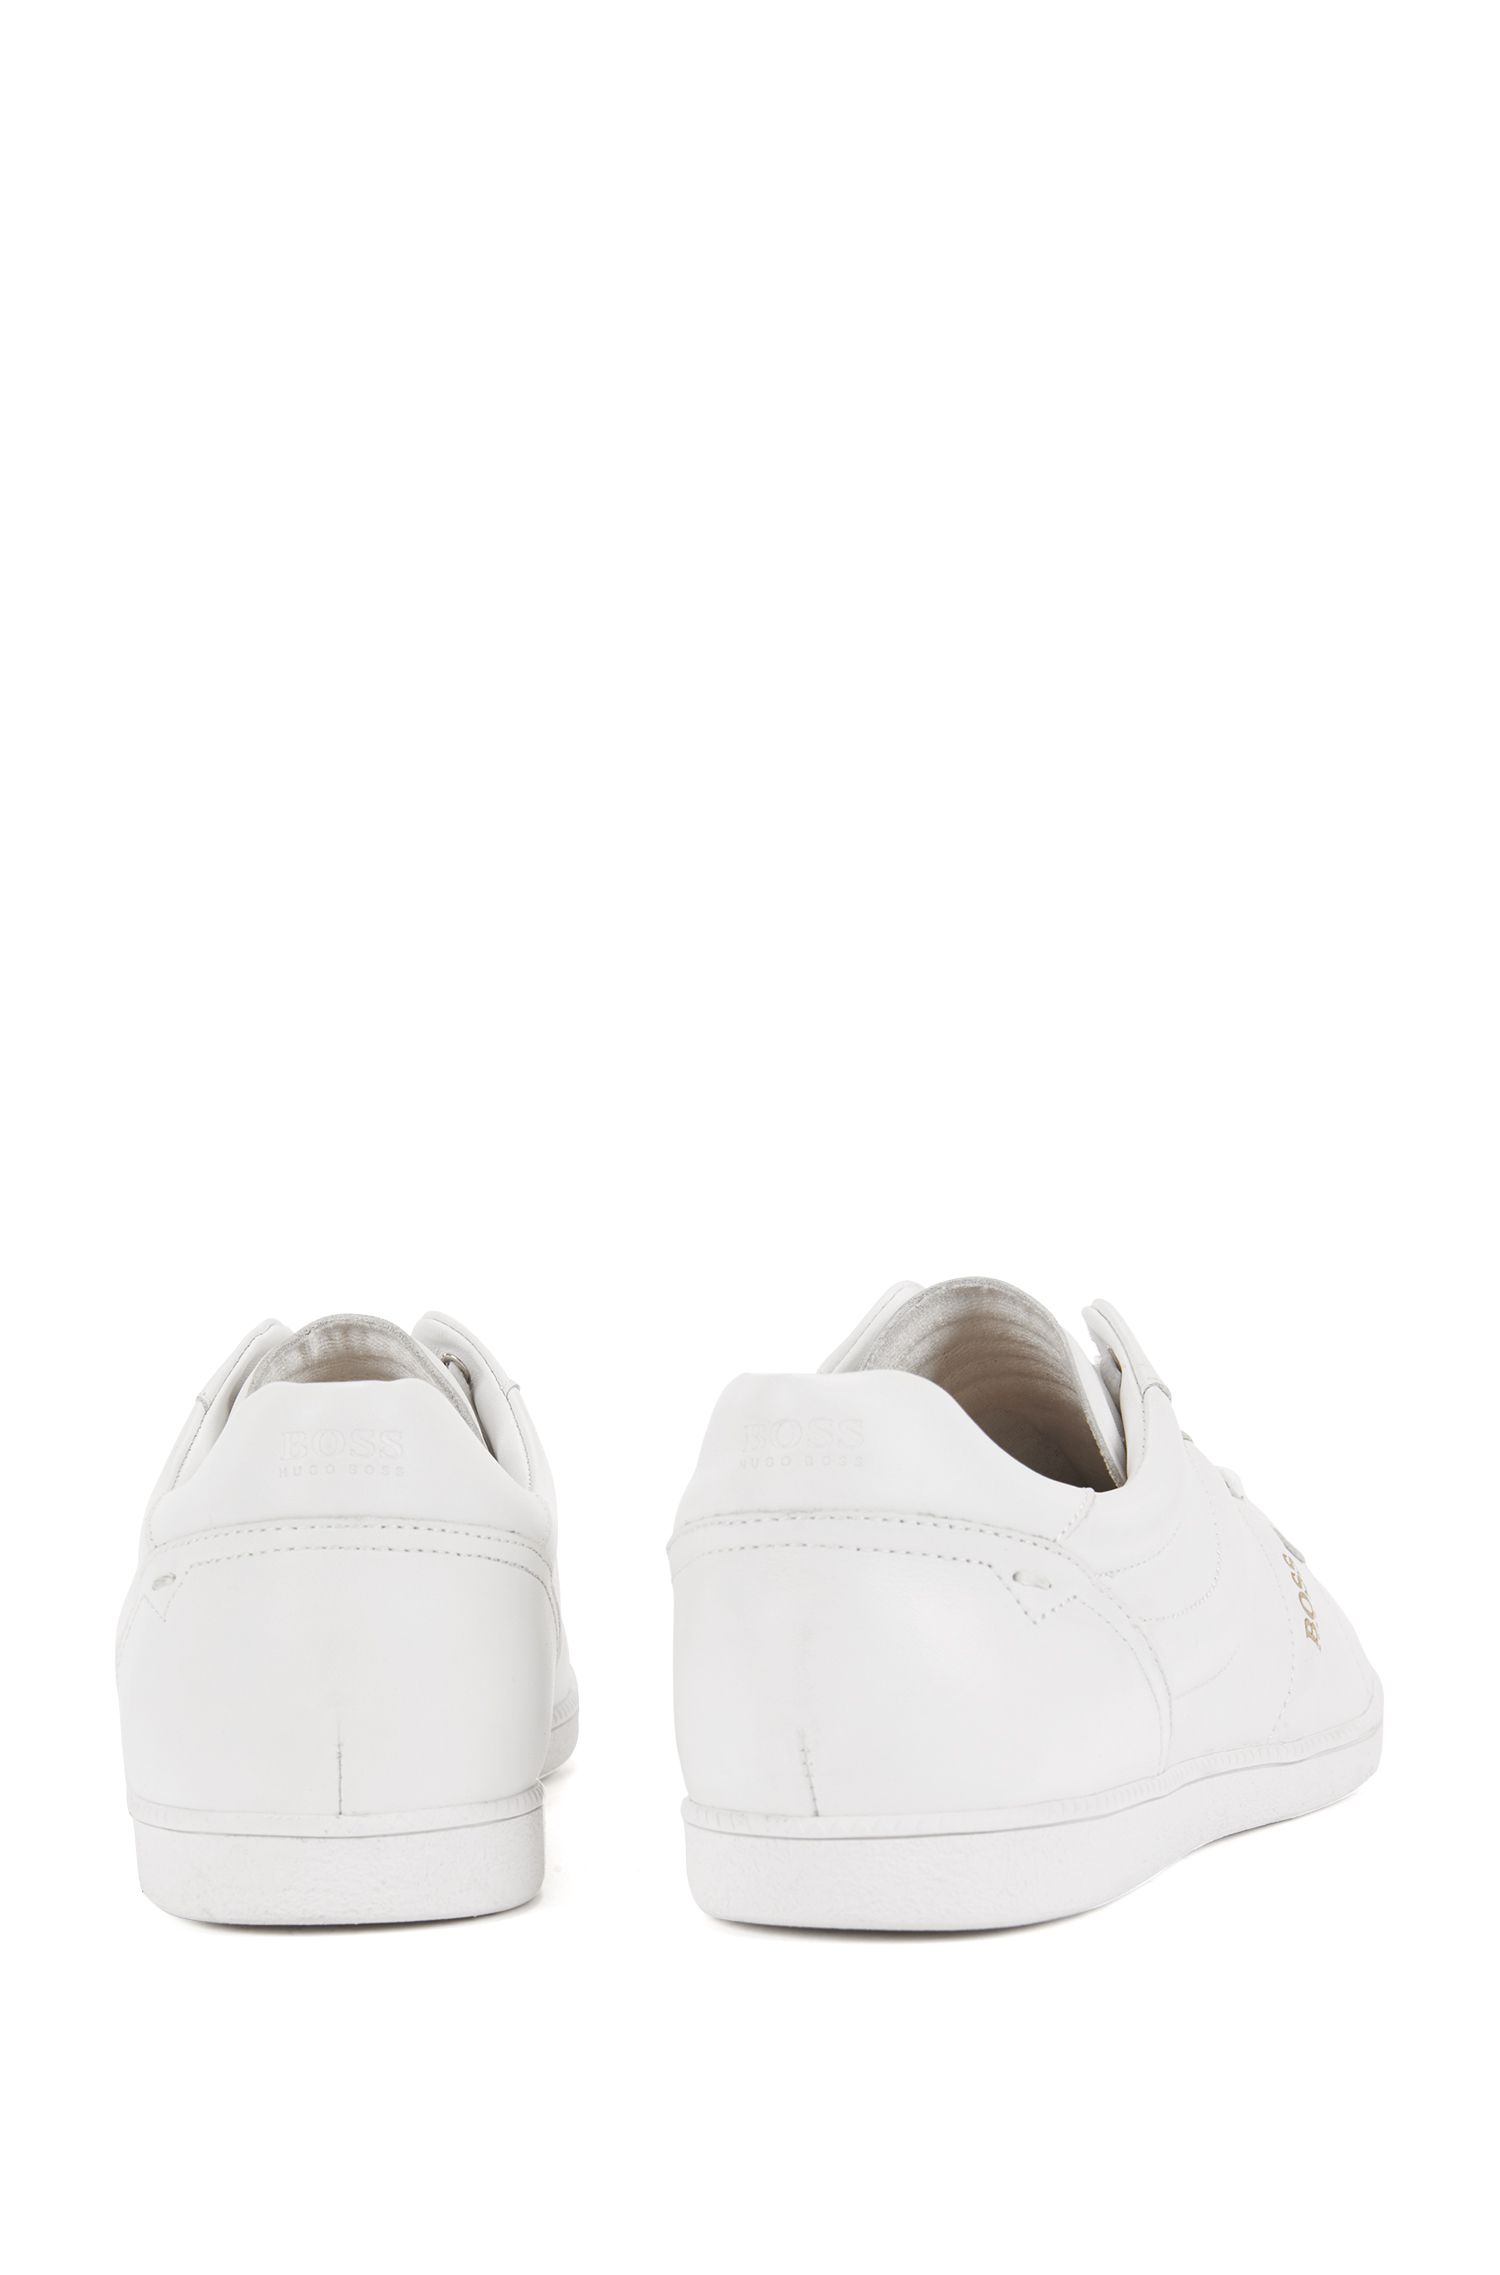 Low-top trainers in nappa leather